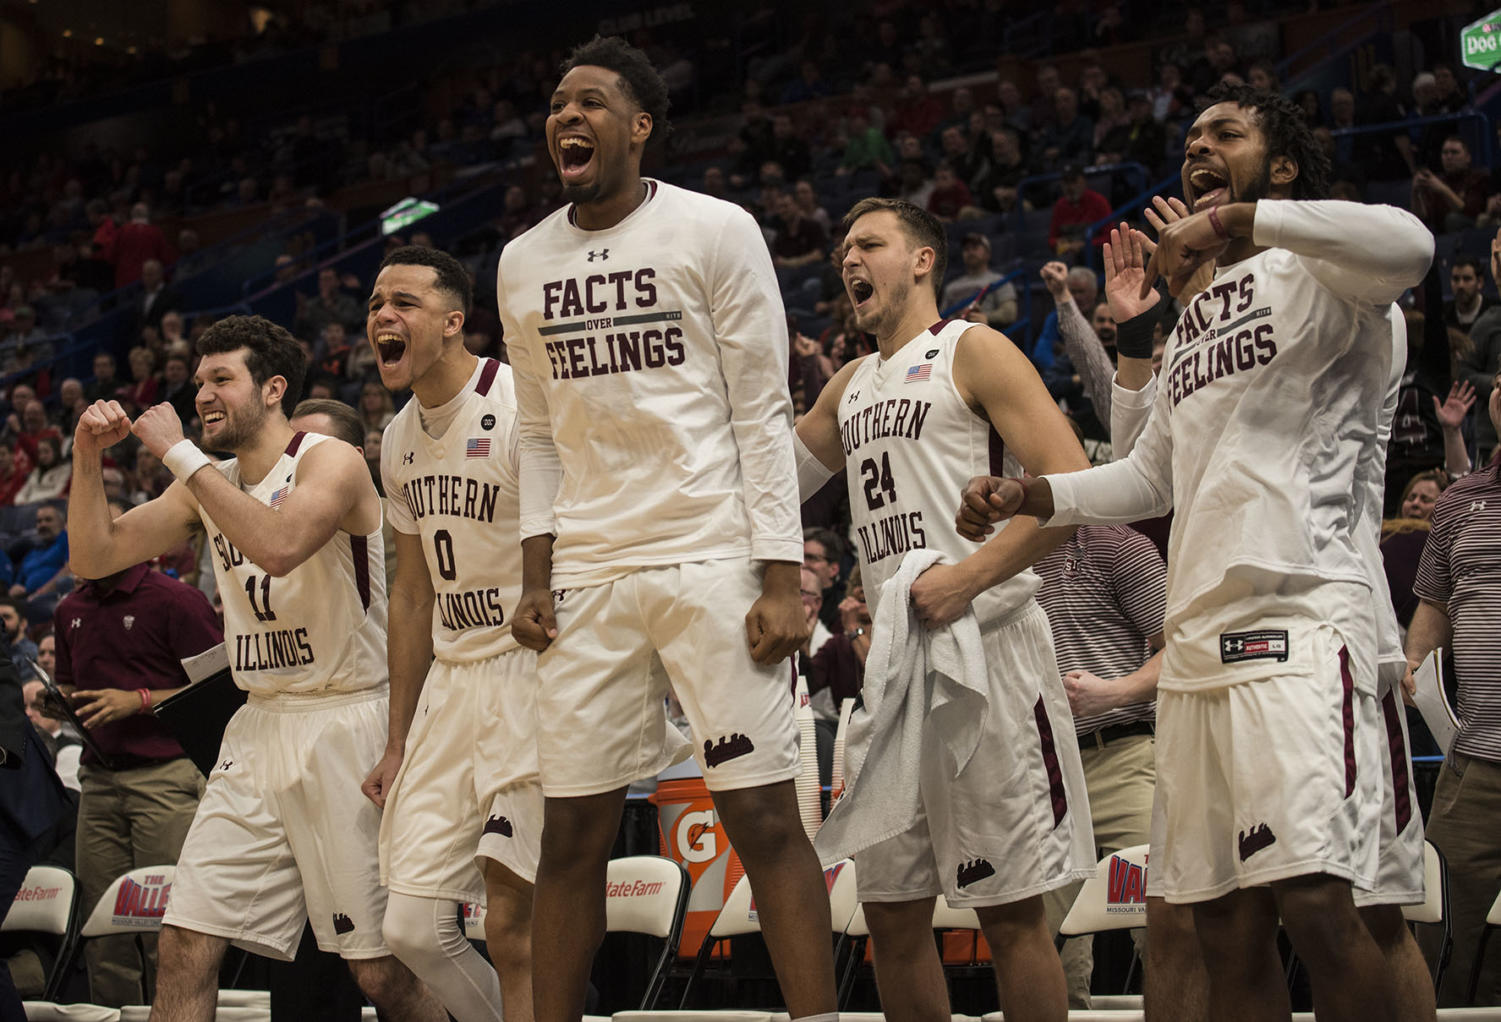 Members of the SIU men's basetball team celebrate a point Friday, March. 3, 2018, during the Salukis' 67-63 win against the Missouri State Bears at the MVC tournament in St. Louis. (Athena Chrysanthou   @Chrysant1Athena)